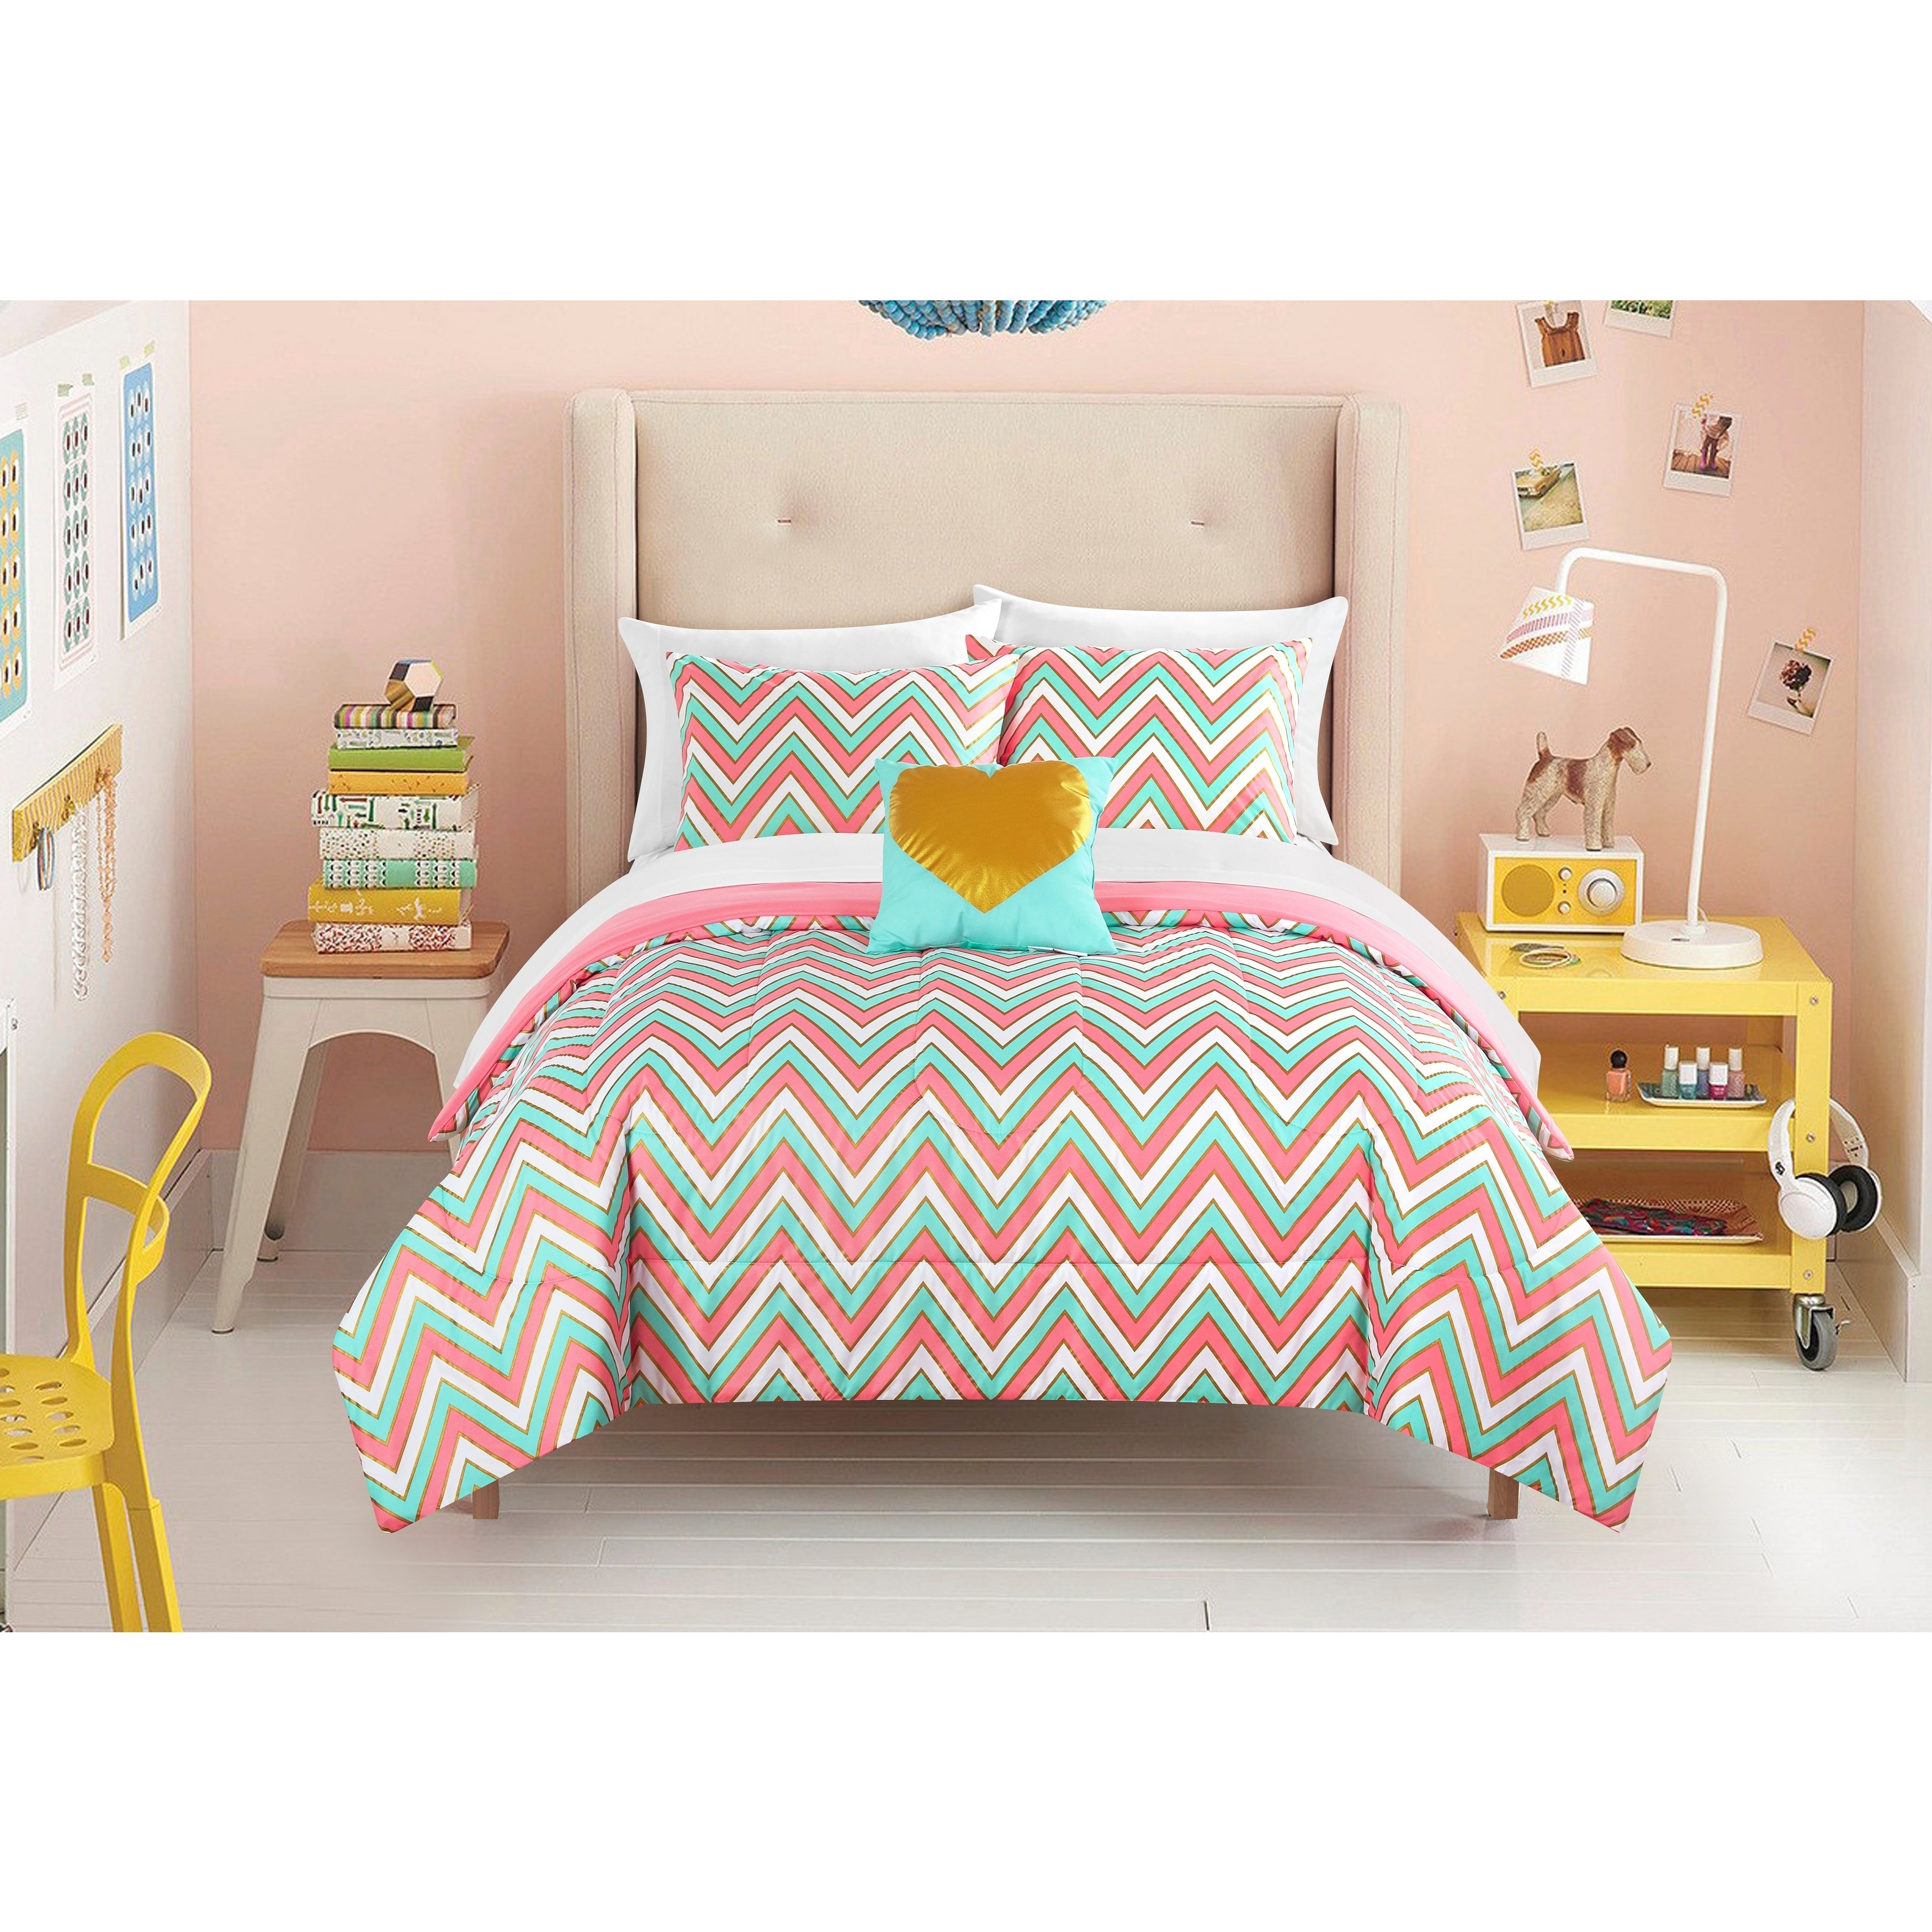 Laude Gilded Chevron 8 Piece Bed In A Bag Bedding Set On Free Shipping Today 14086587 Full